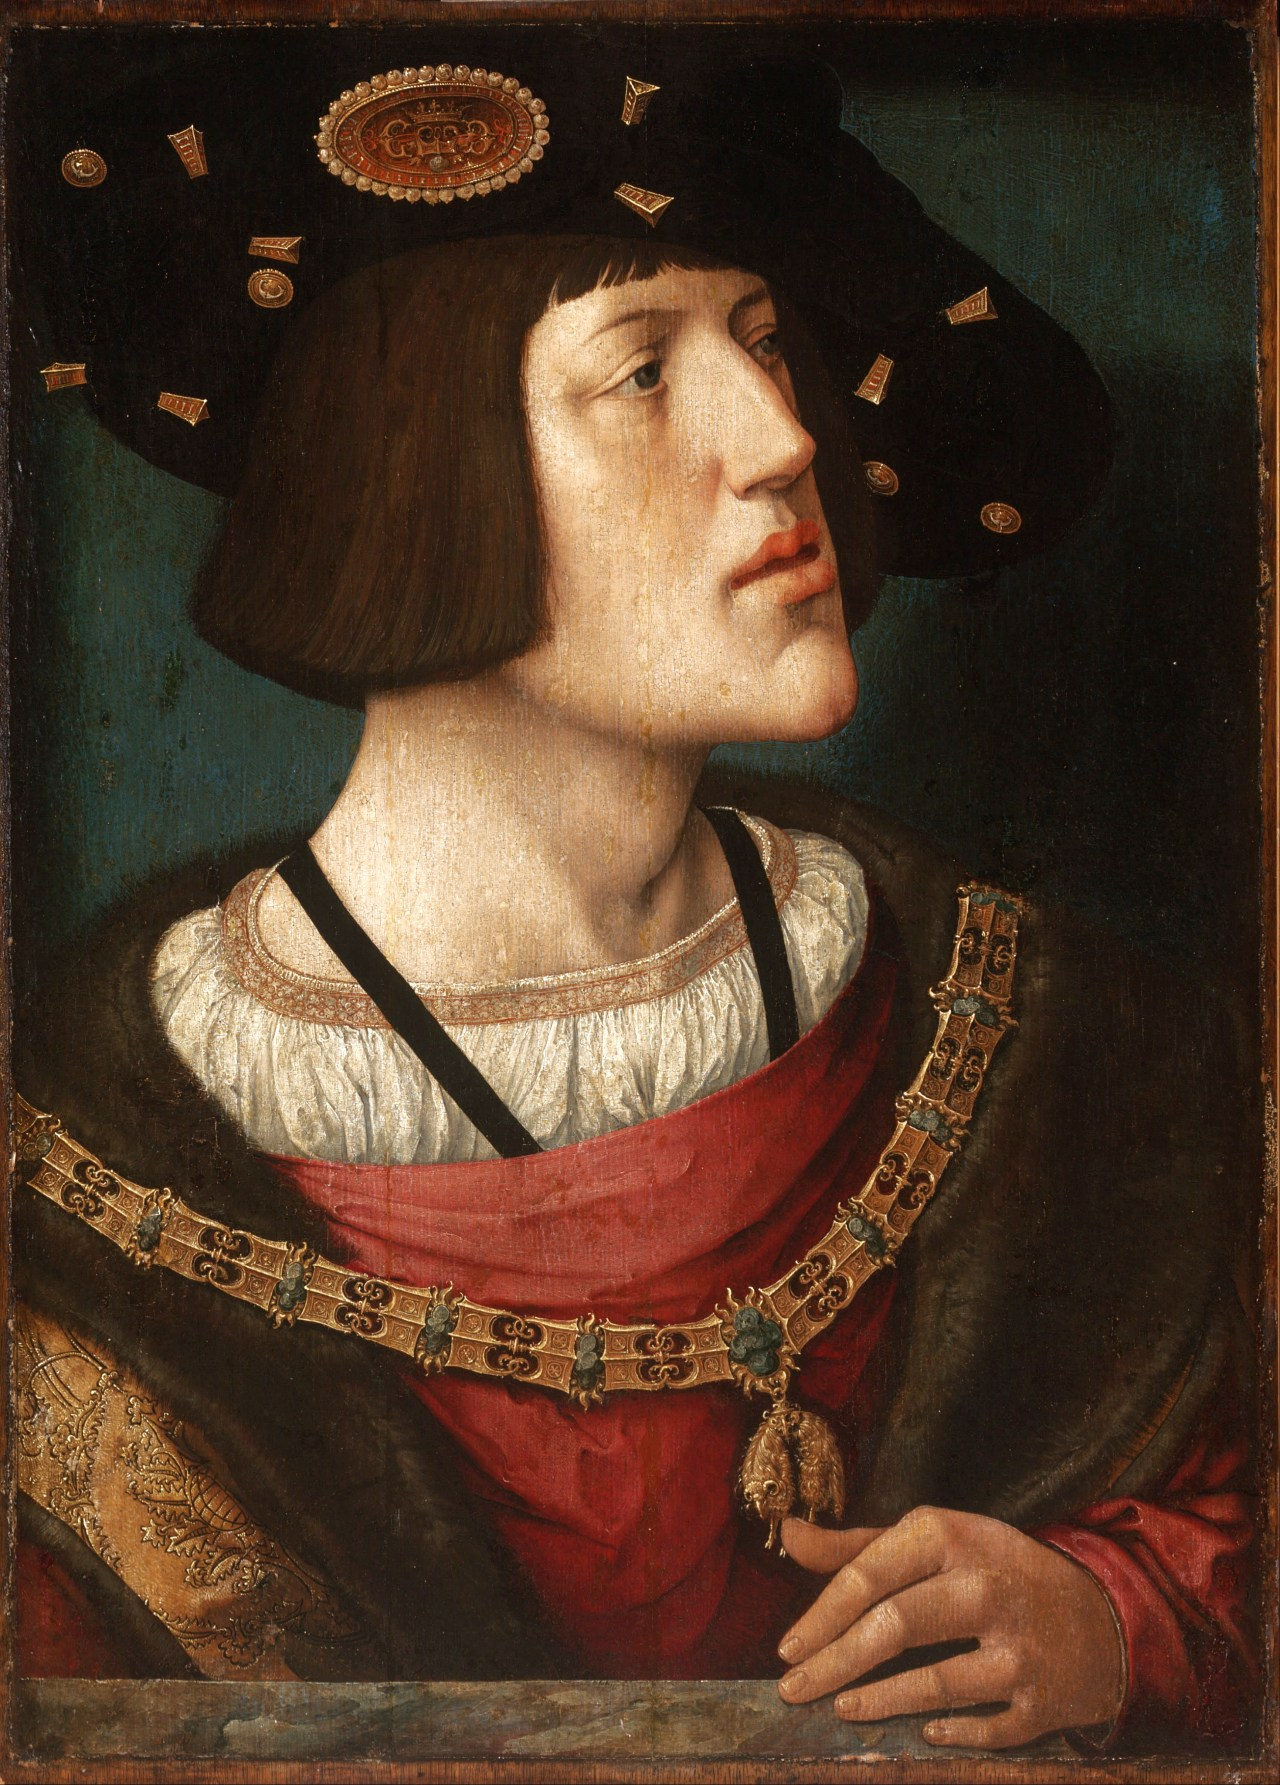 Charles V, Holy Roman Emperor and rival of Henry VIII